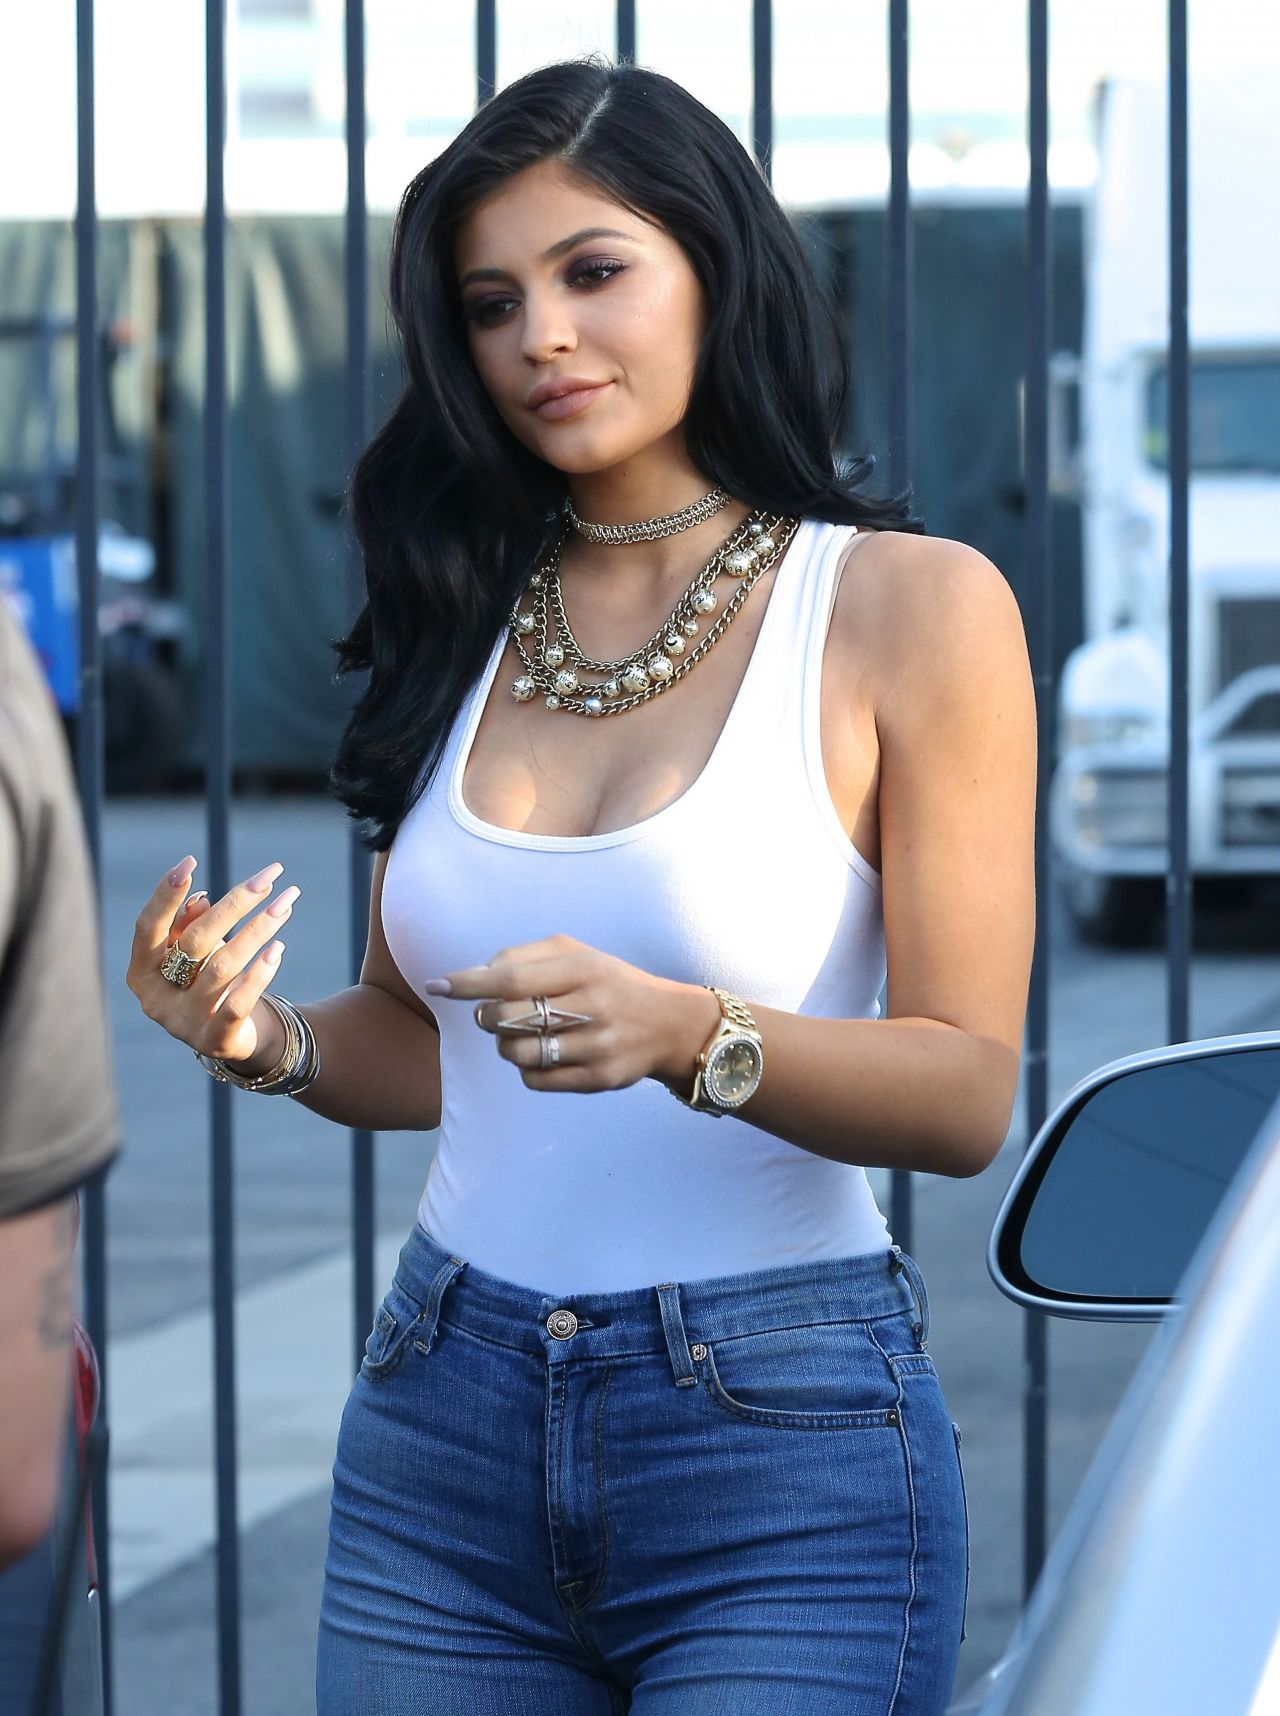 Kylie Jenner Hot In Tight Jeans